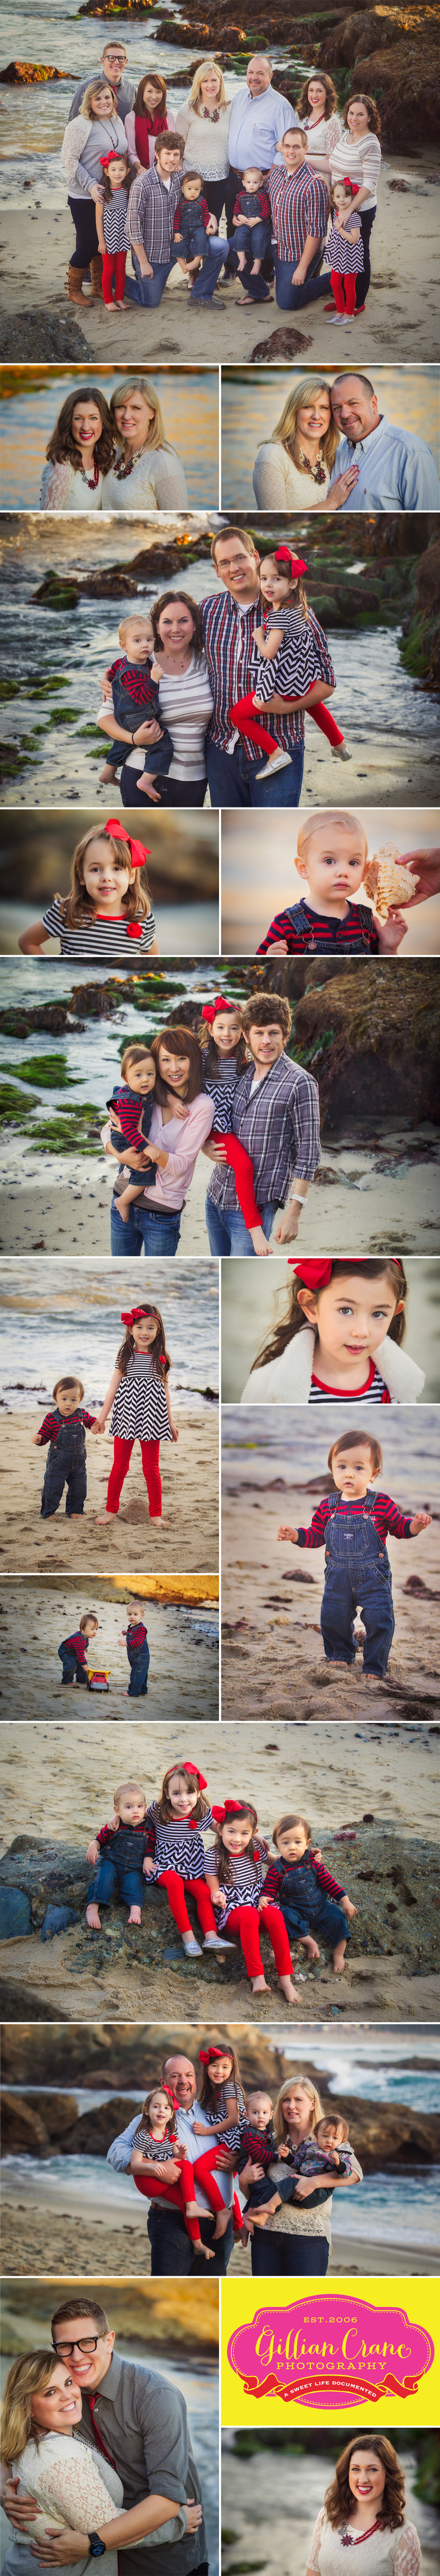 gillian-crane-laguna-beach-orange-county-extended-family-portraits